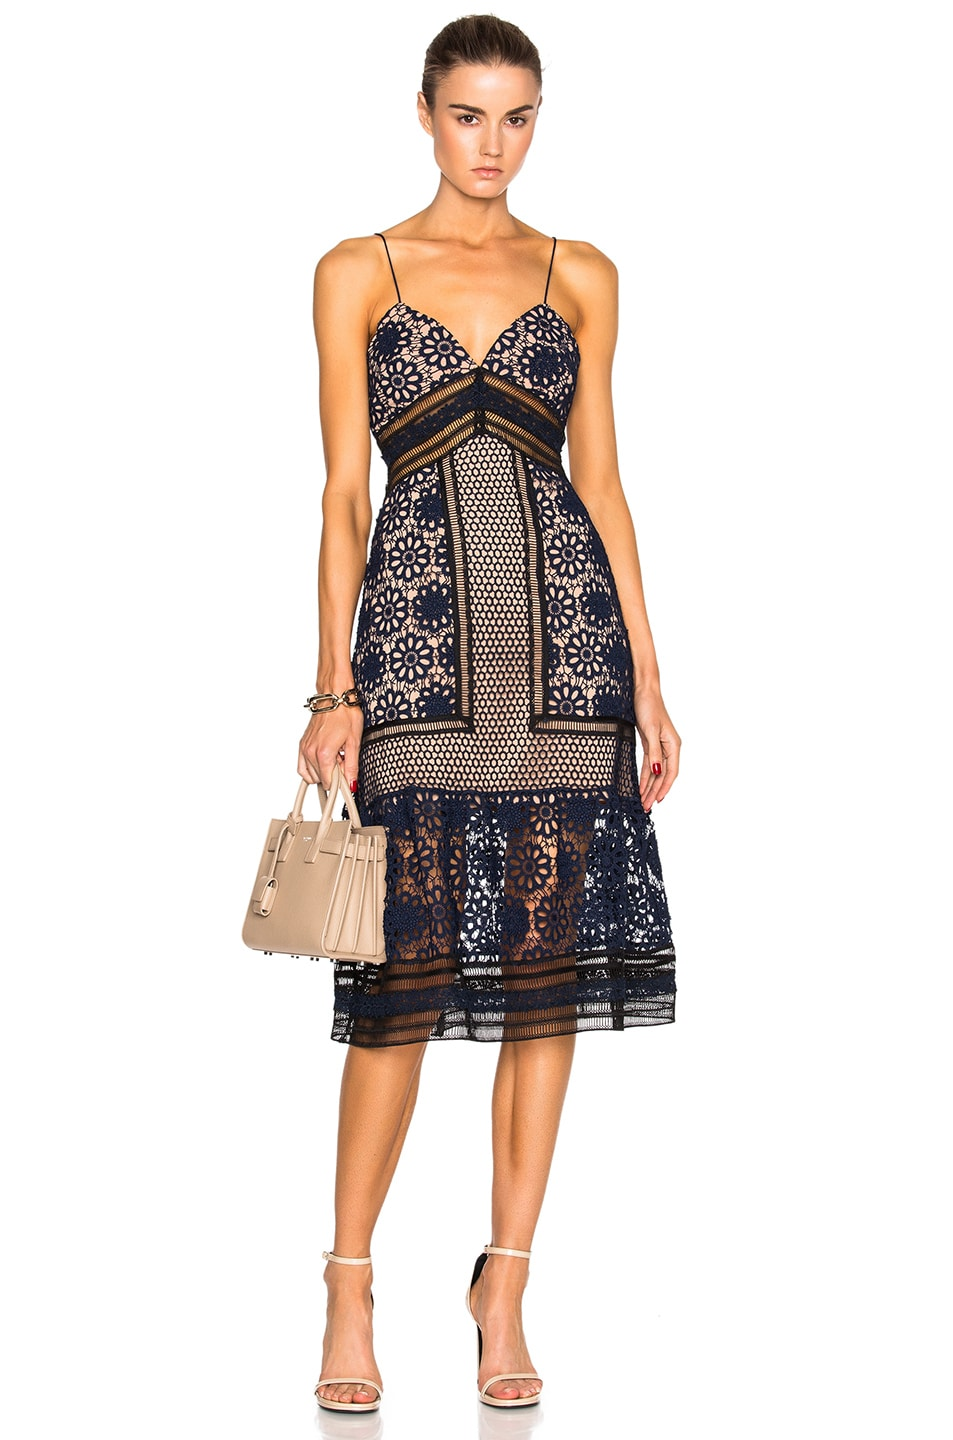 d40ae72a8a4ff Image 1 of self-portrait Strappy Max Dress in Black, Navy & Nude